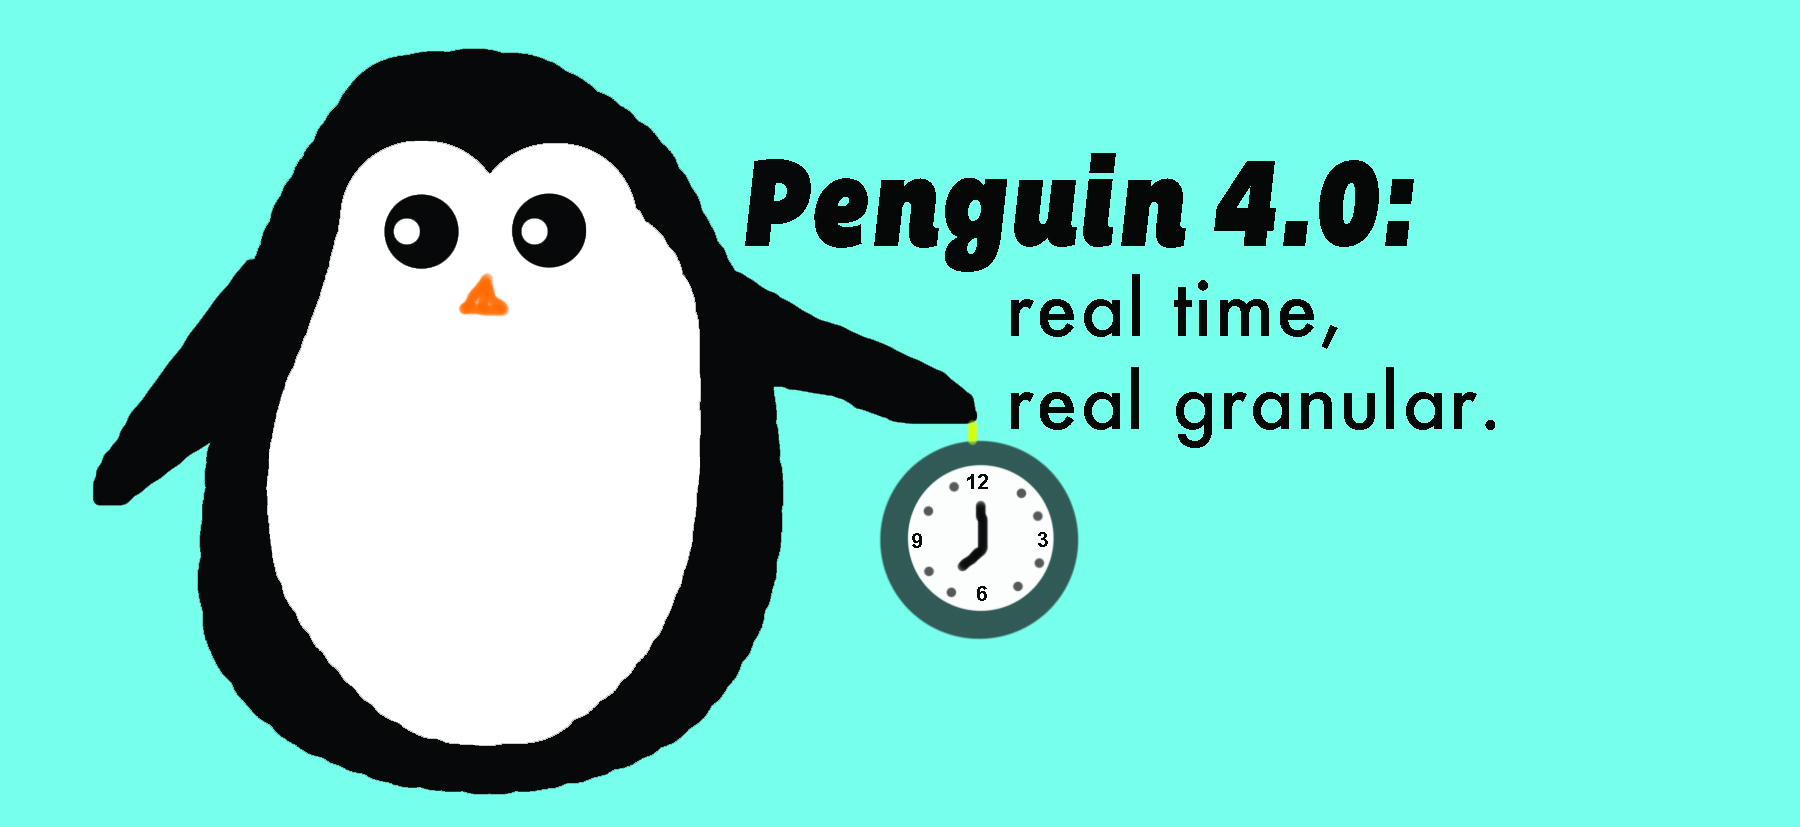 The New Google Penguin 4 Update: Does it FLY?